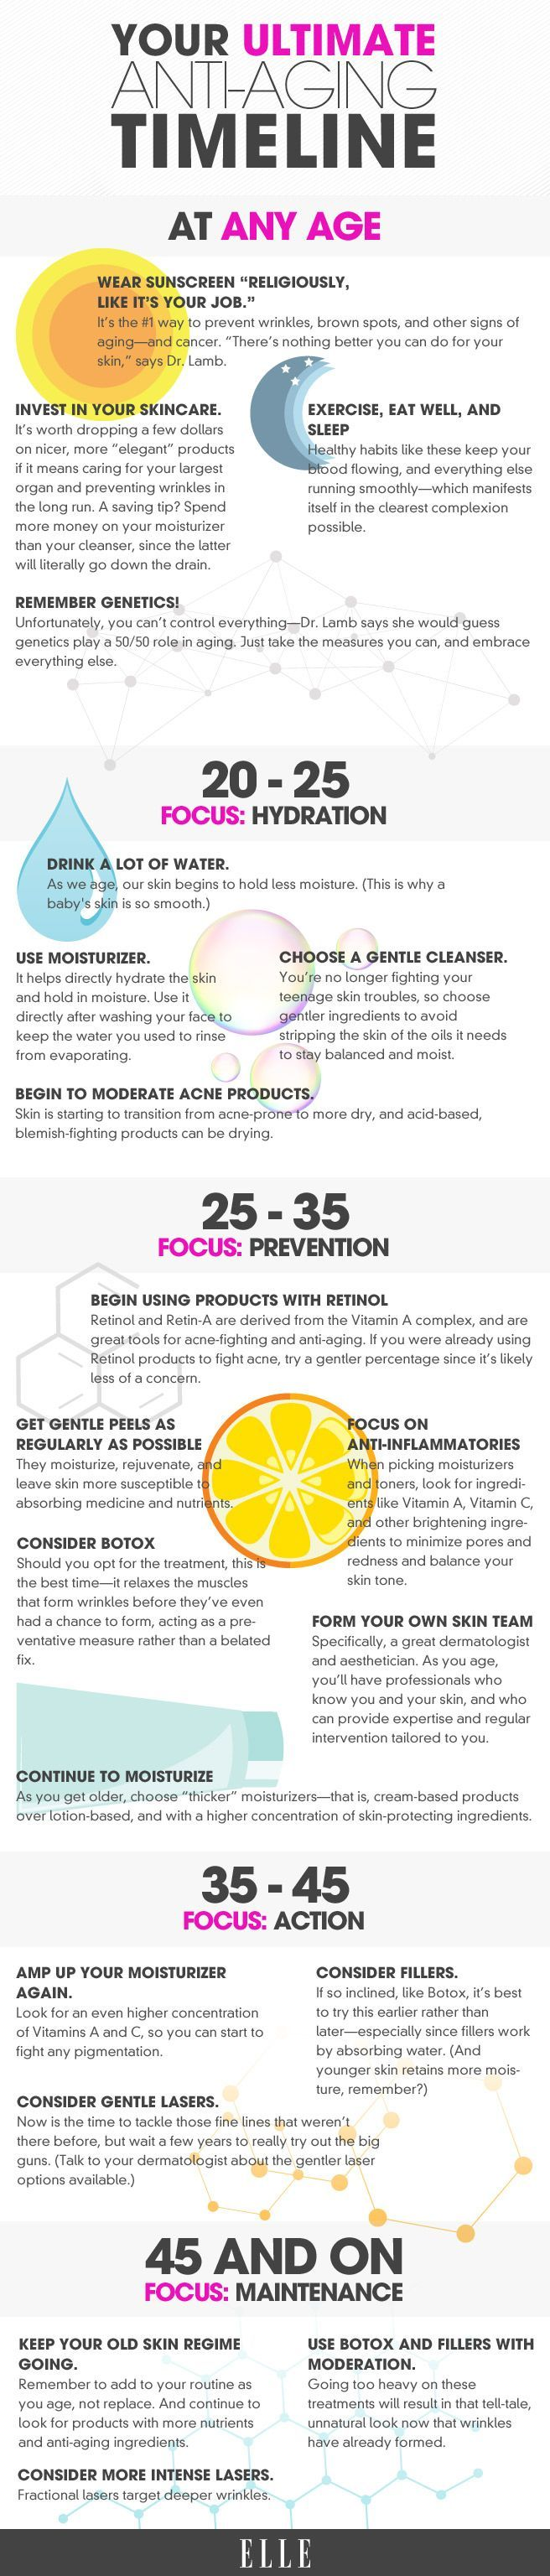 Anti Aging Skincare Guide For Every Age Preventative Skincare Infographic Elle Worklad Skincare Infographic Anti Aging Skin Products Aging Skin Care